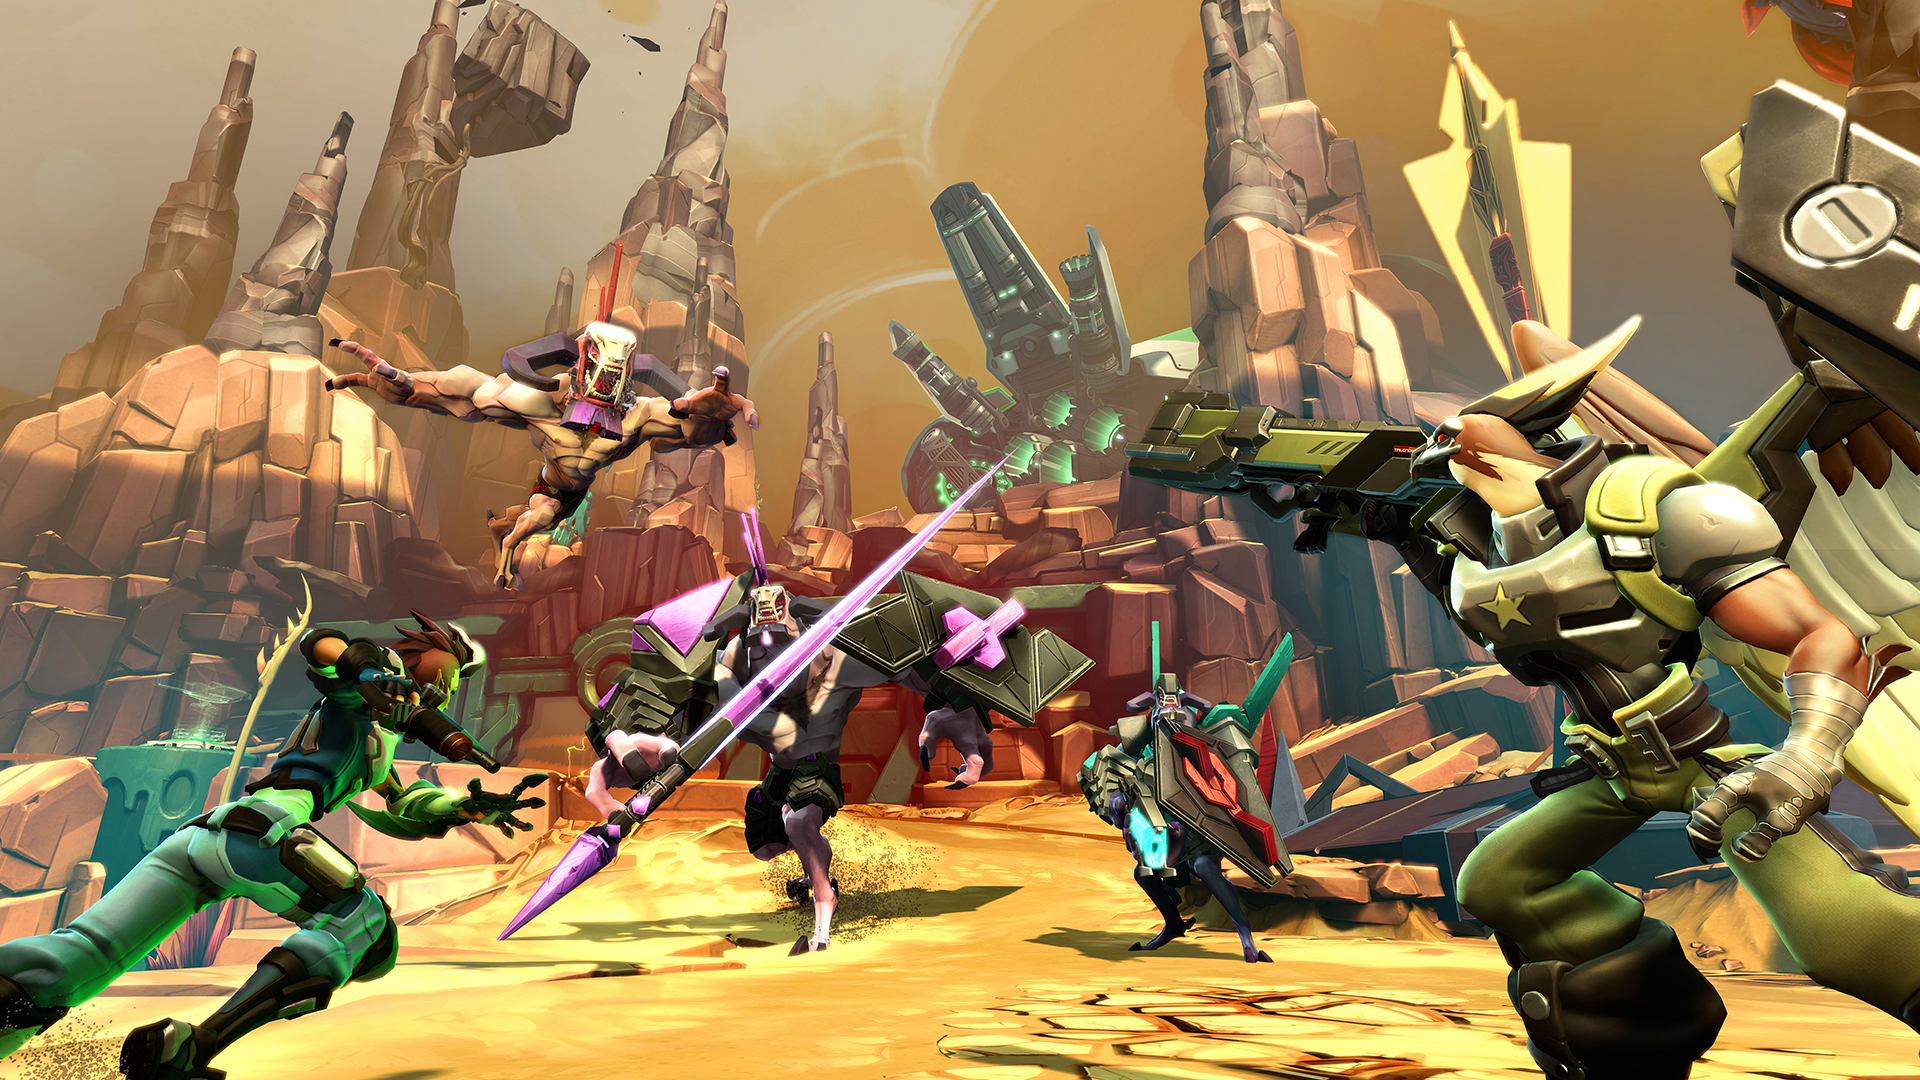 Battleborn - why make do with four-player when you can have five?